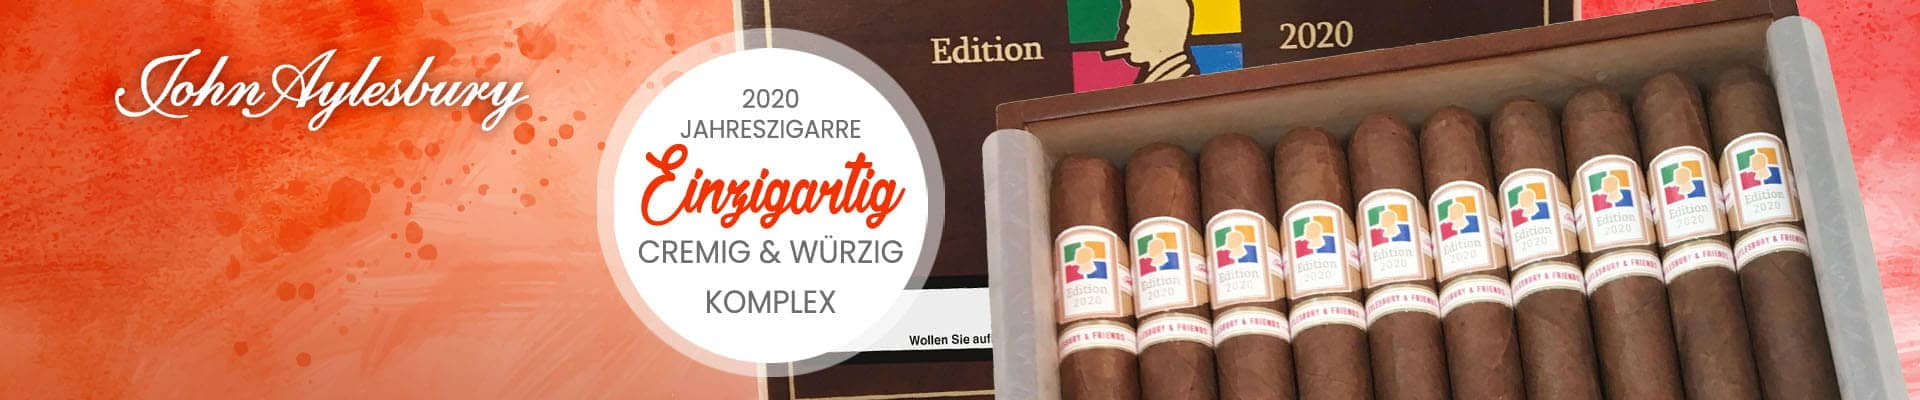 Jahreszigarre 2020 Limited Edition